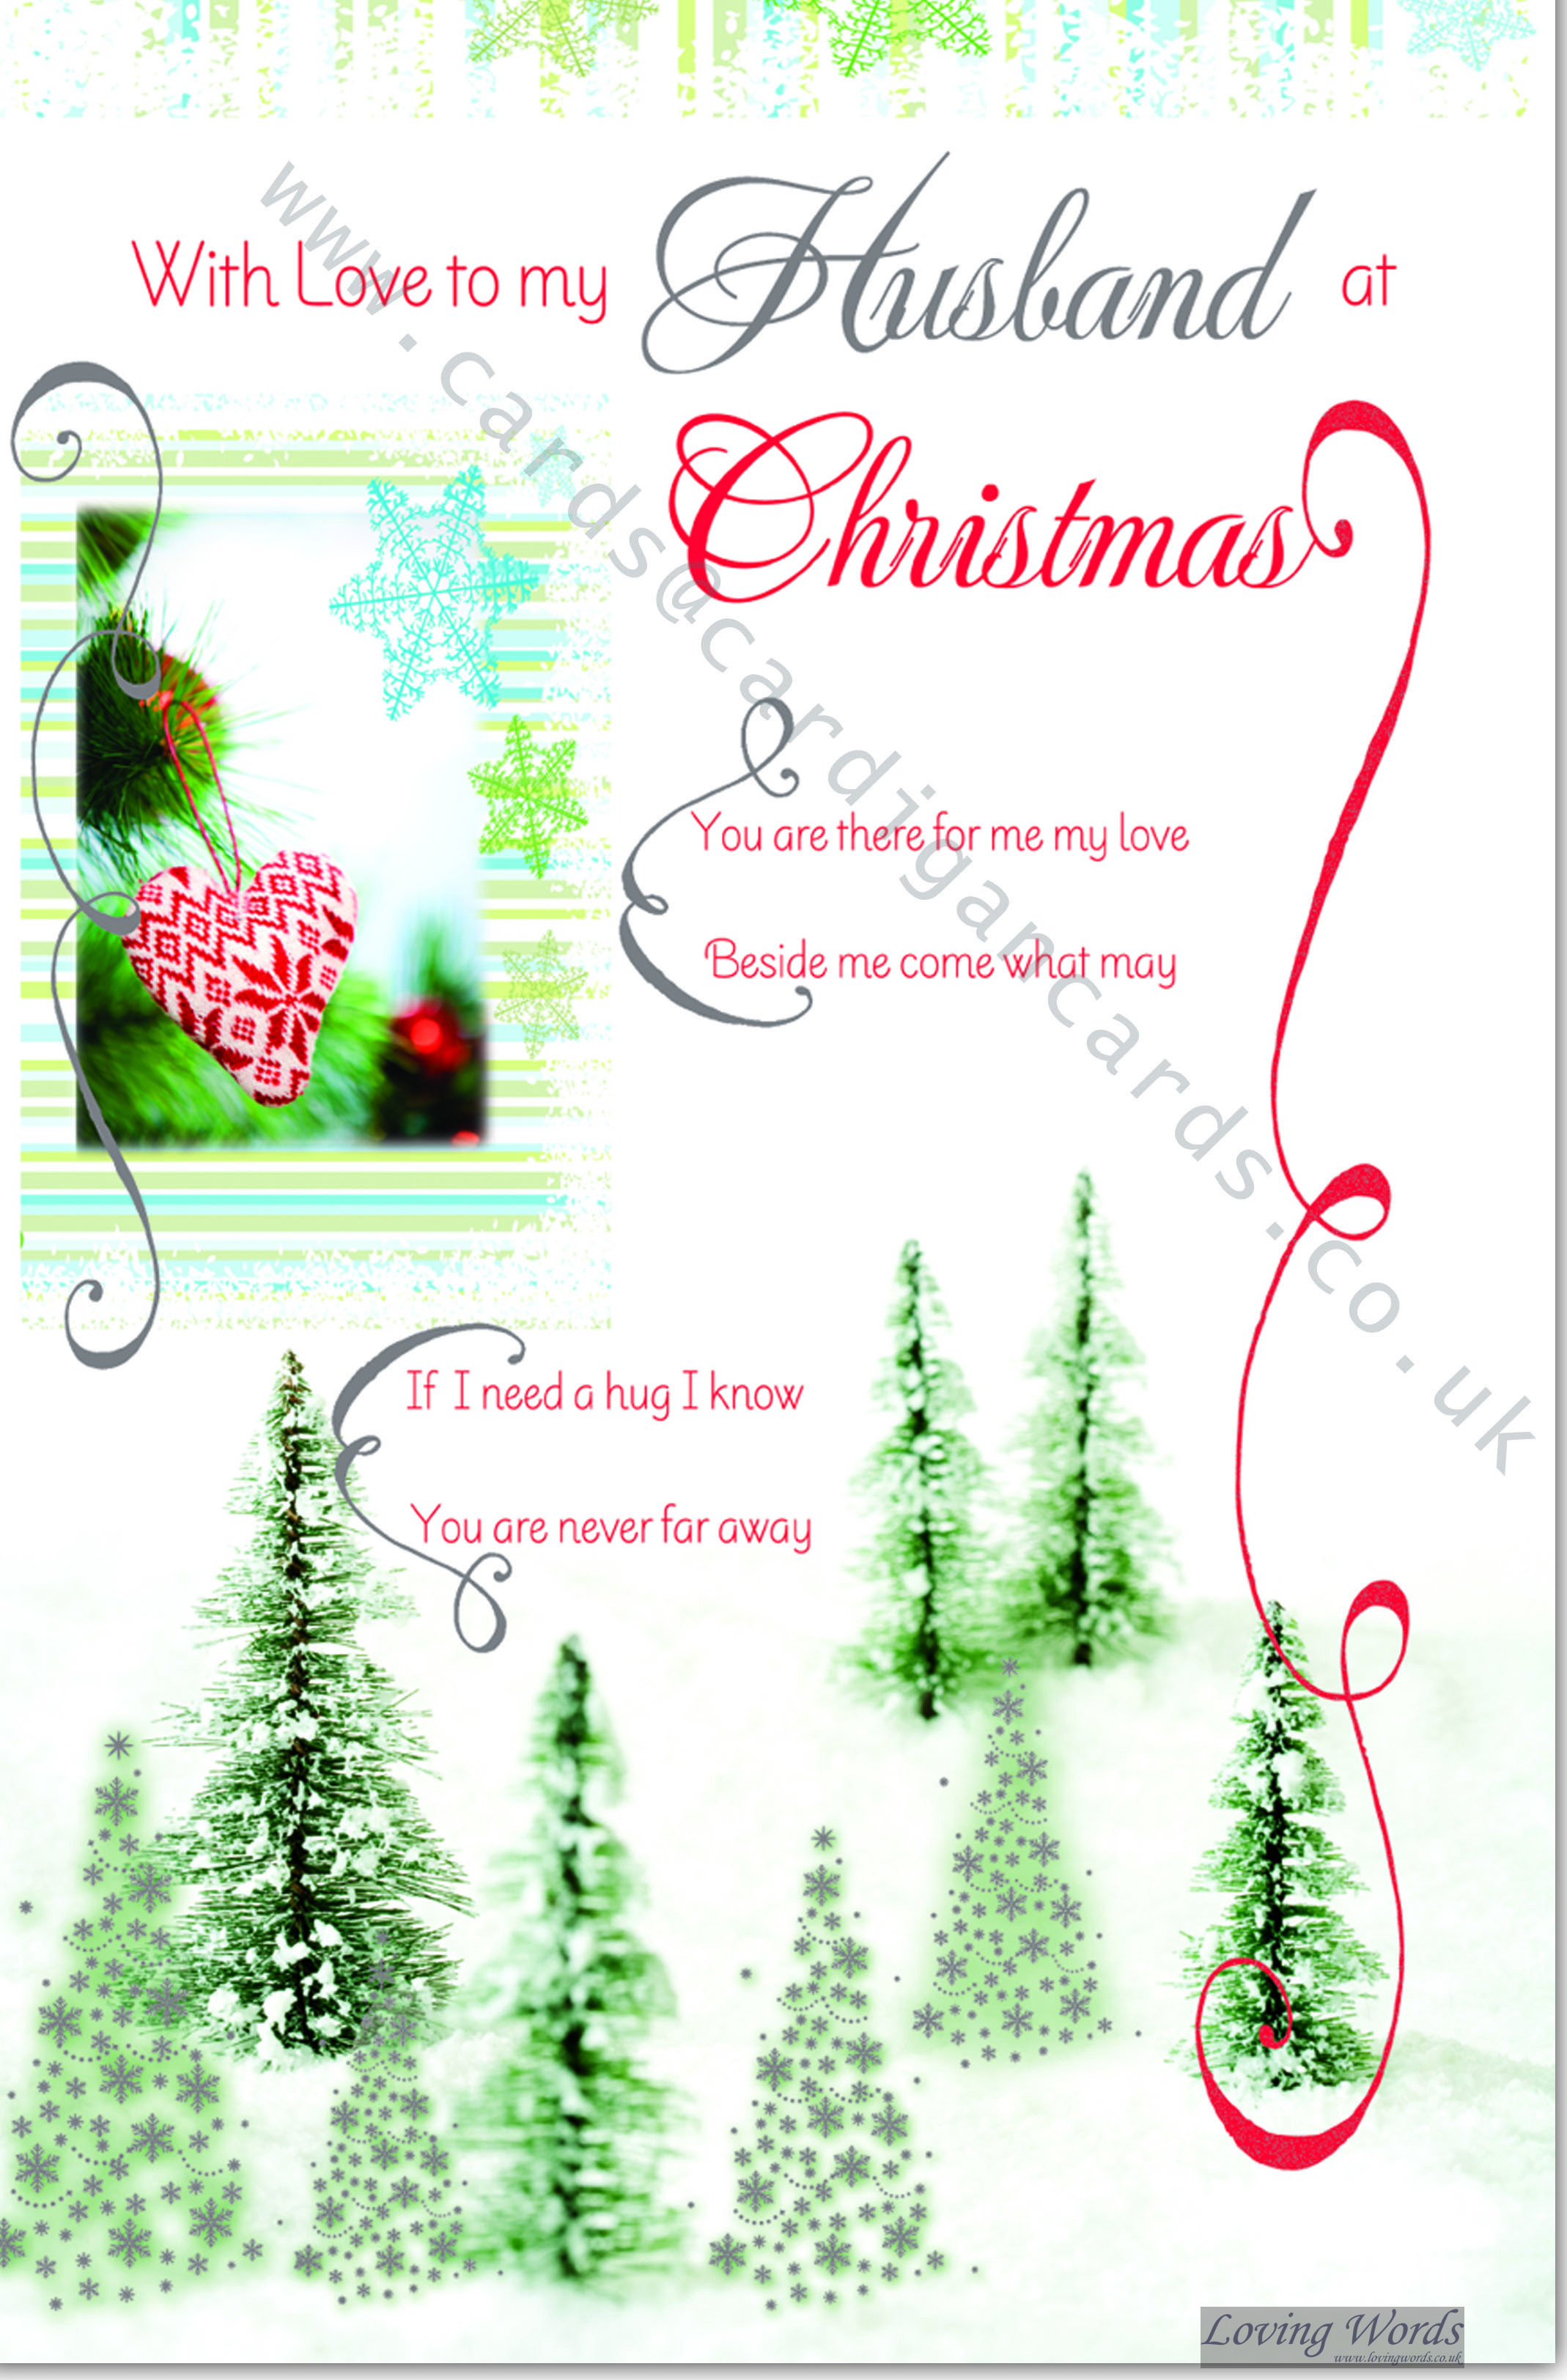 With love to my husband at christmas greeting cards by loving words personalised greeting cards kristyandbryce Choice Image